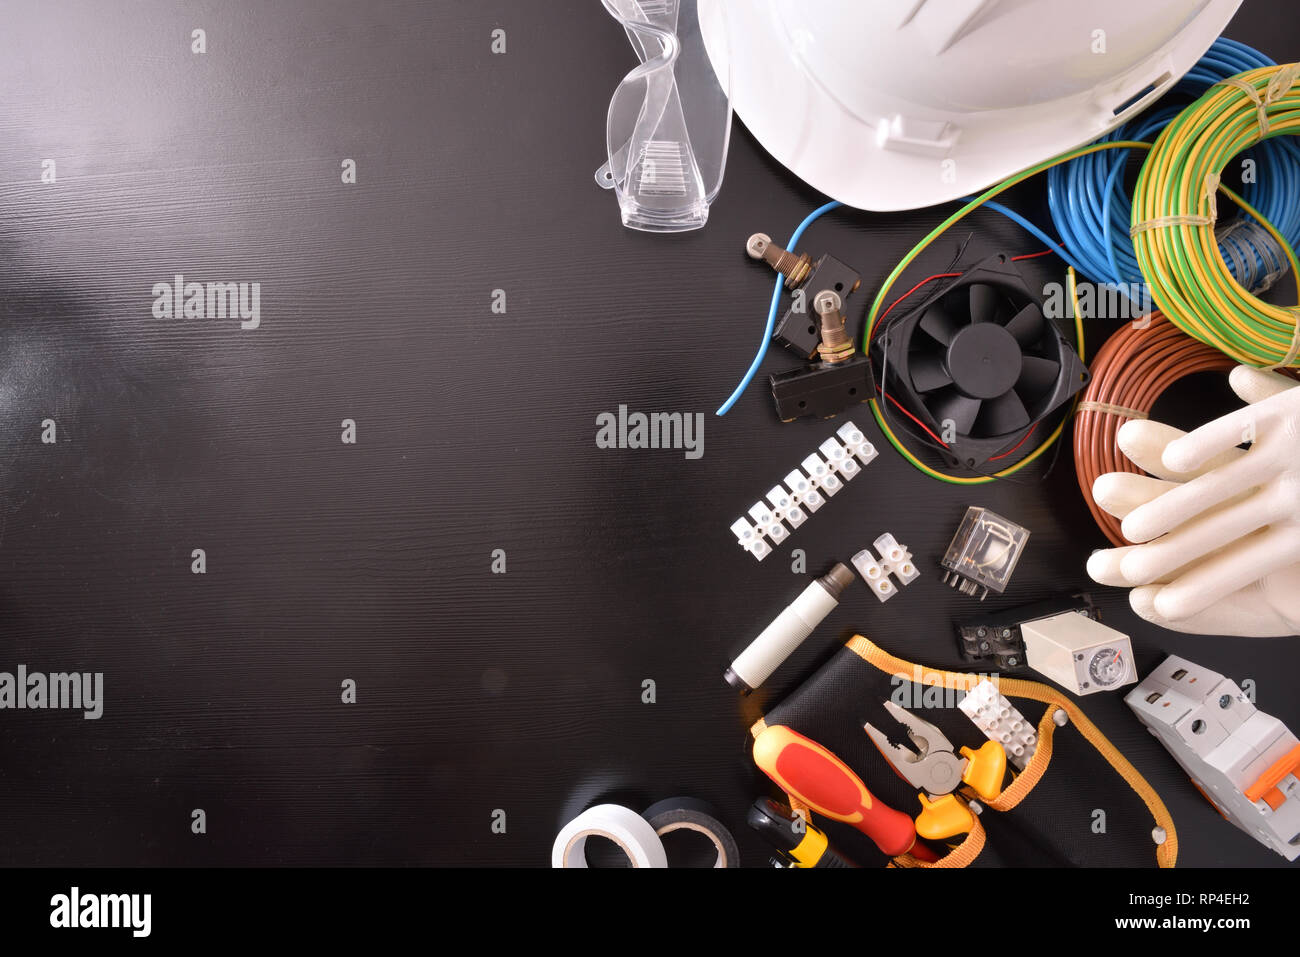 Black table with industrial equipment and tools for installation, repair and maintenance of electrical panels and electrical machinery space on the le - Stock Image